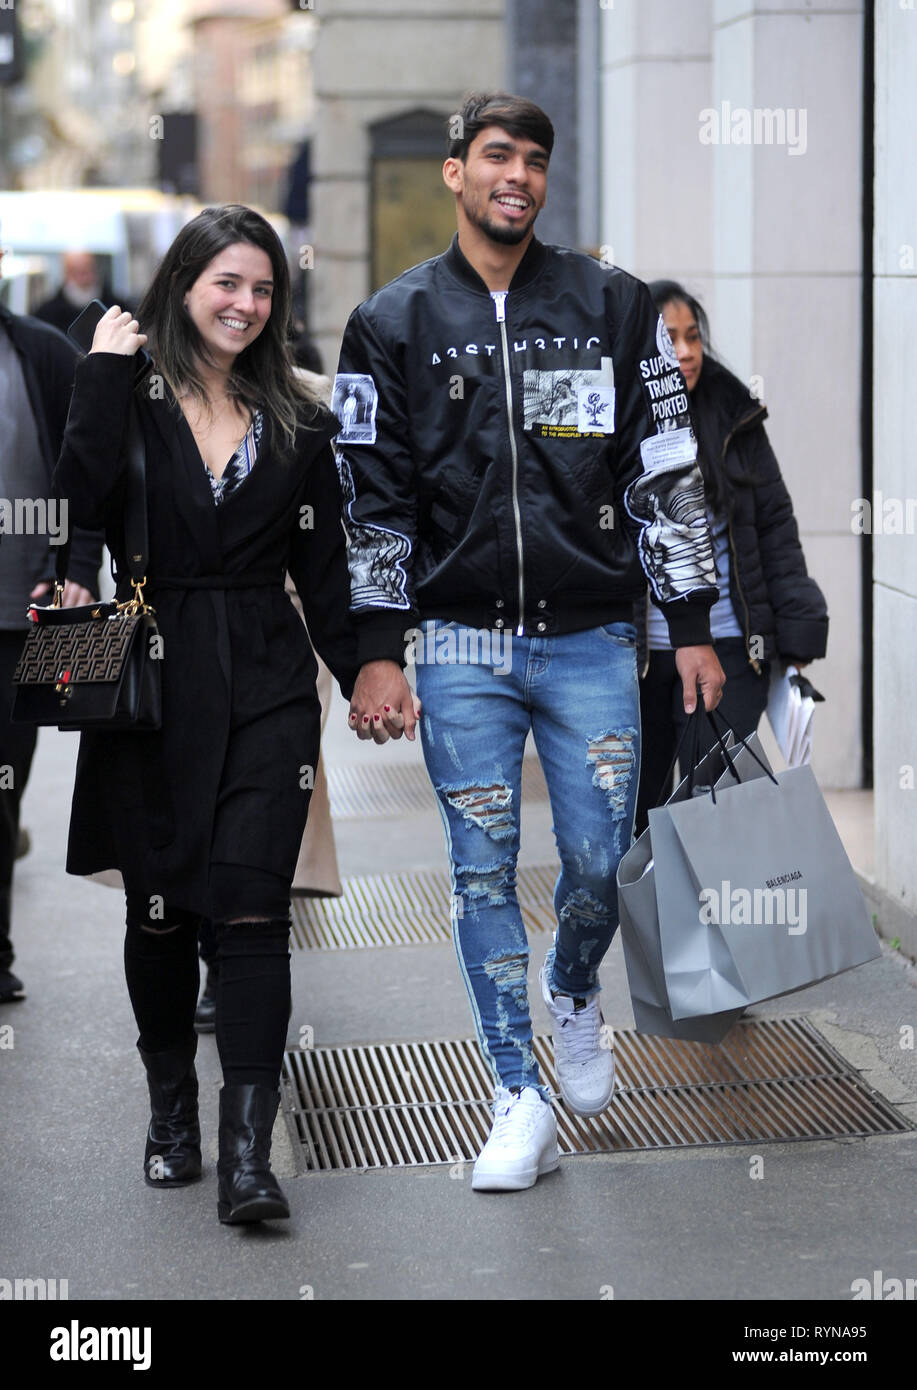 19f3a0950f AC Milan and Brazilian football player Lucas Paqueta and his wife Maria  Eduarda Fournier shopping in